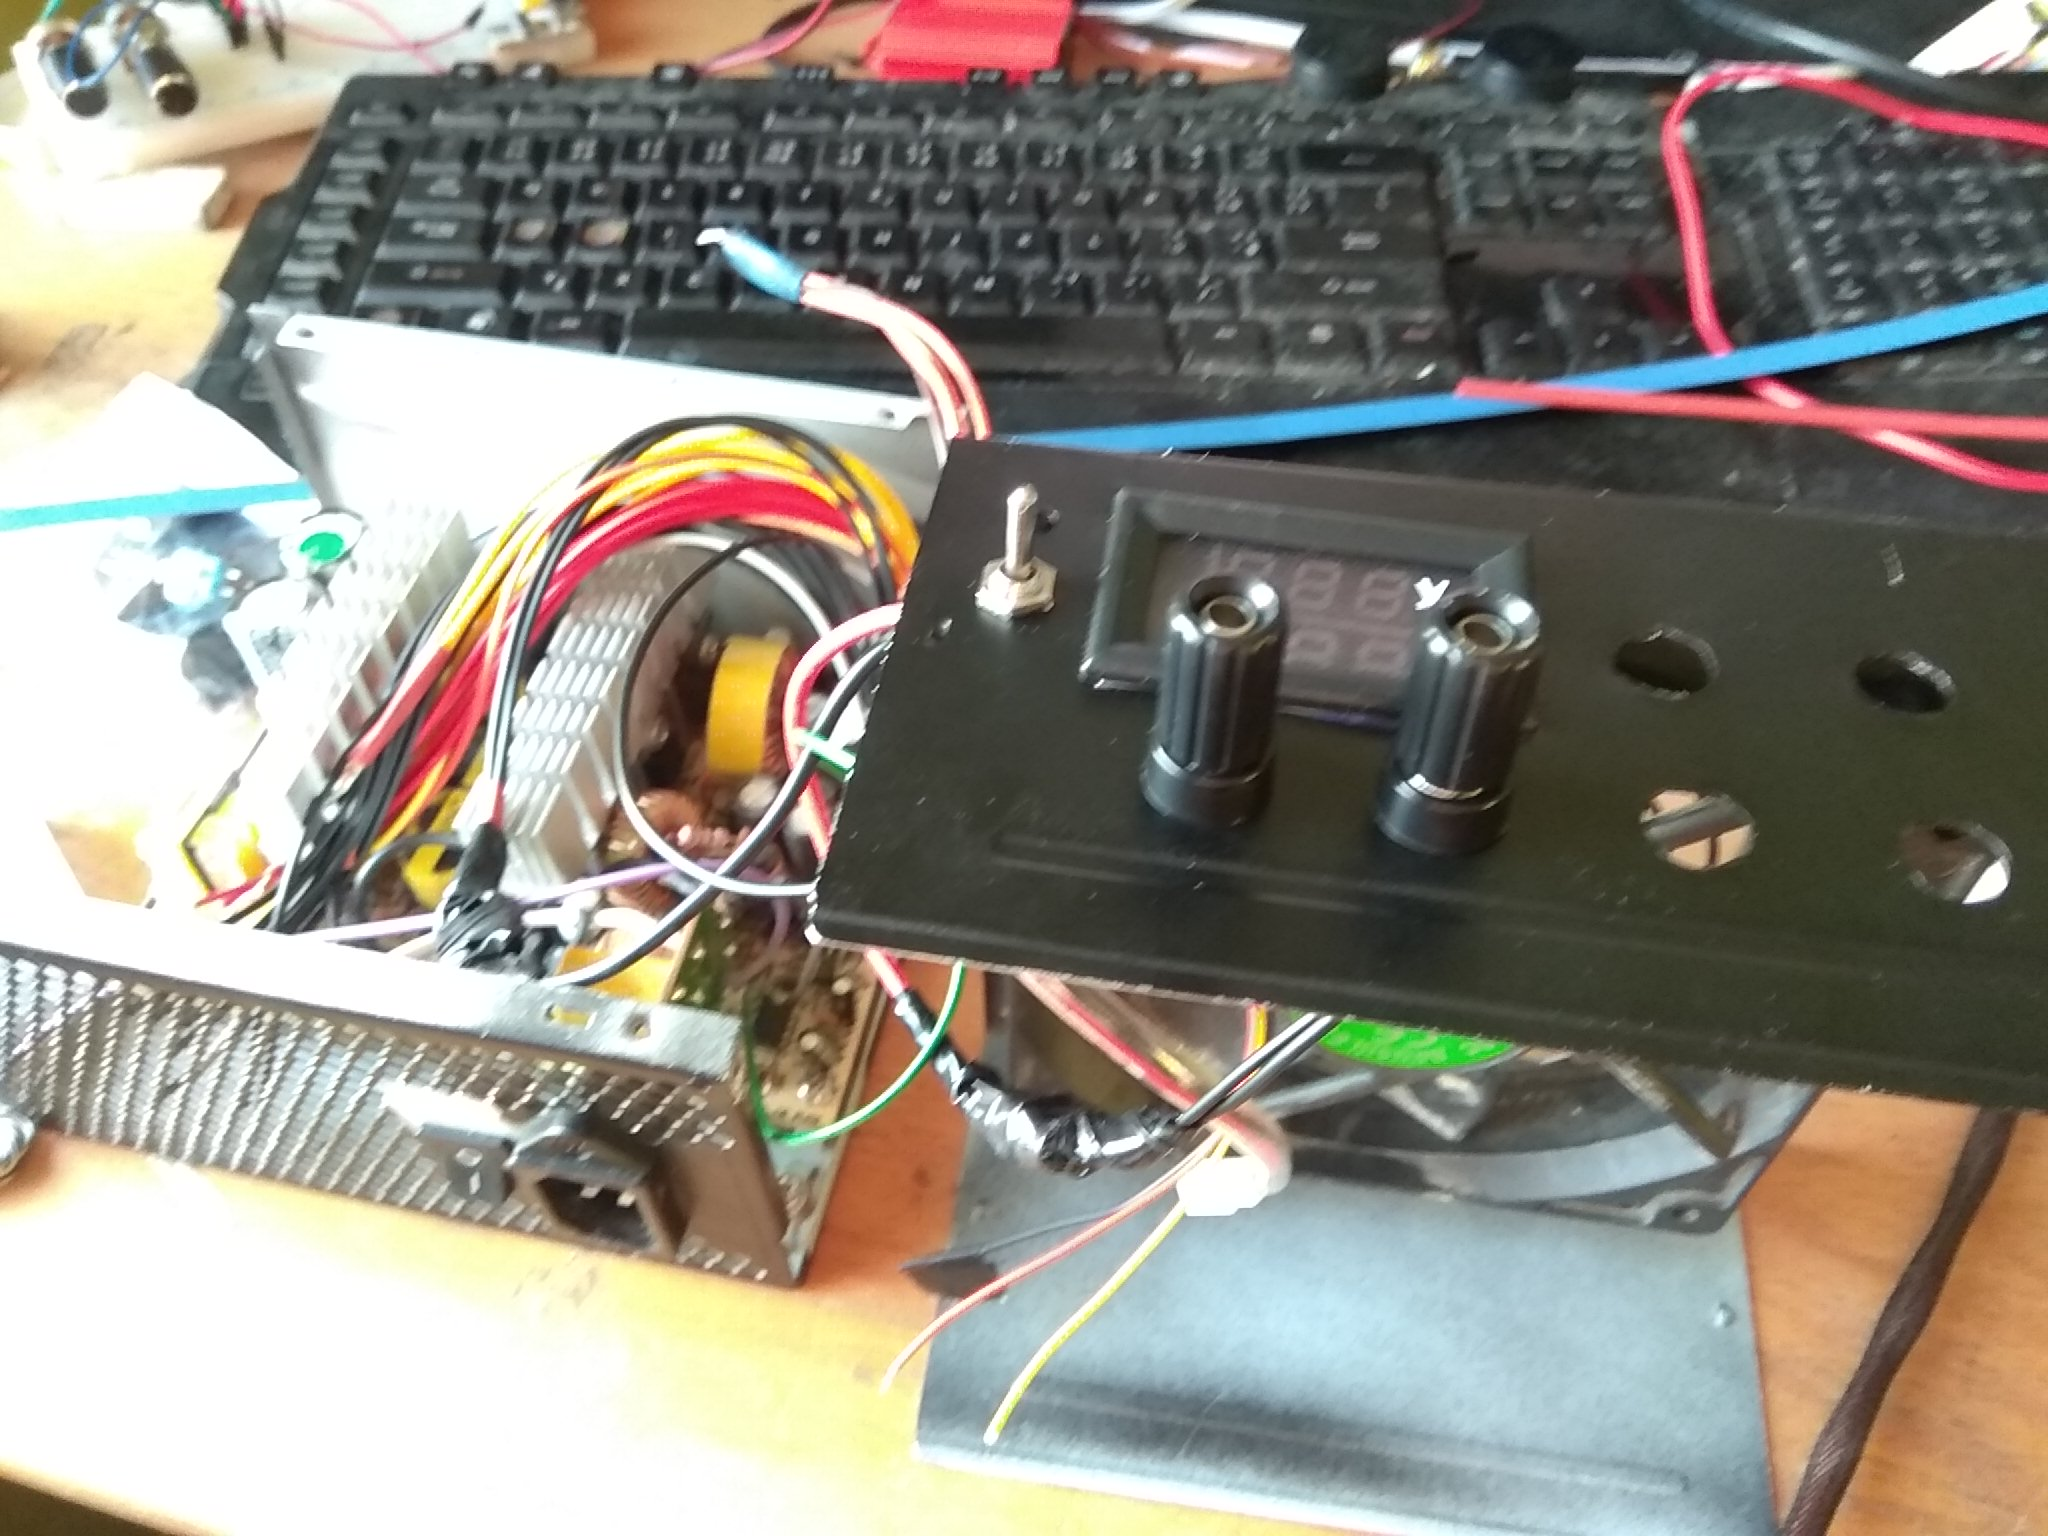 Diy Do It Yourself Circuitlab Pmosfet Buck Converter Switching Power Supply Quoted By 1436194 1436311 1436481 1436619 My Bench Source